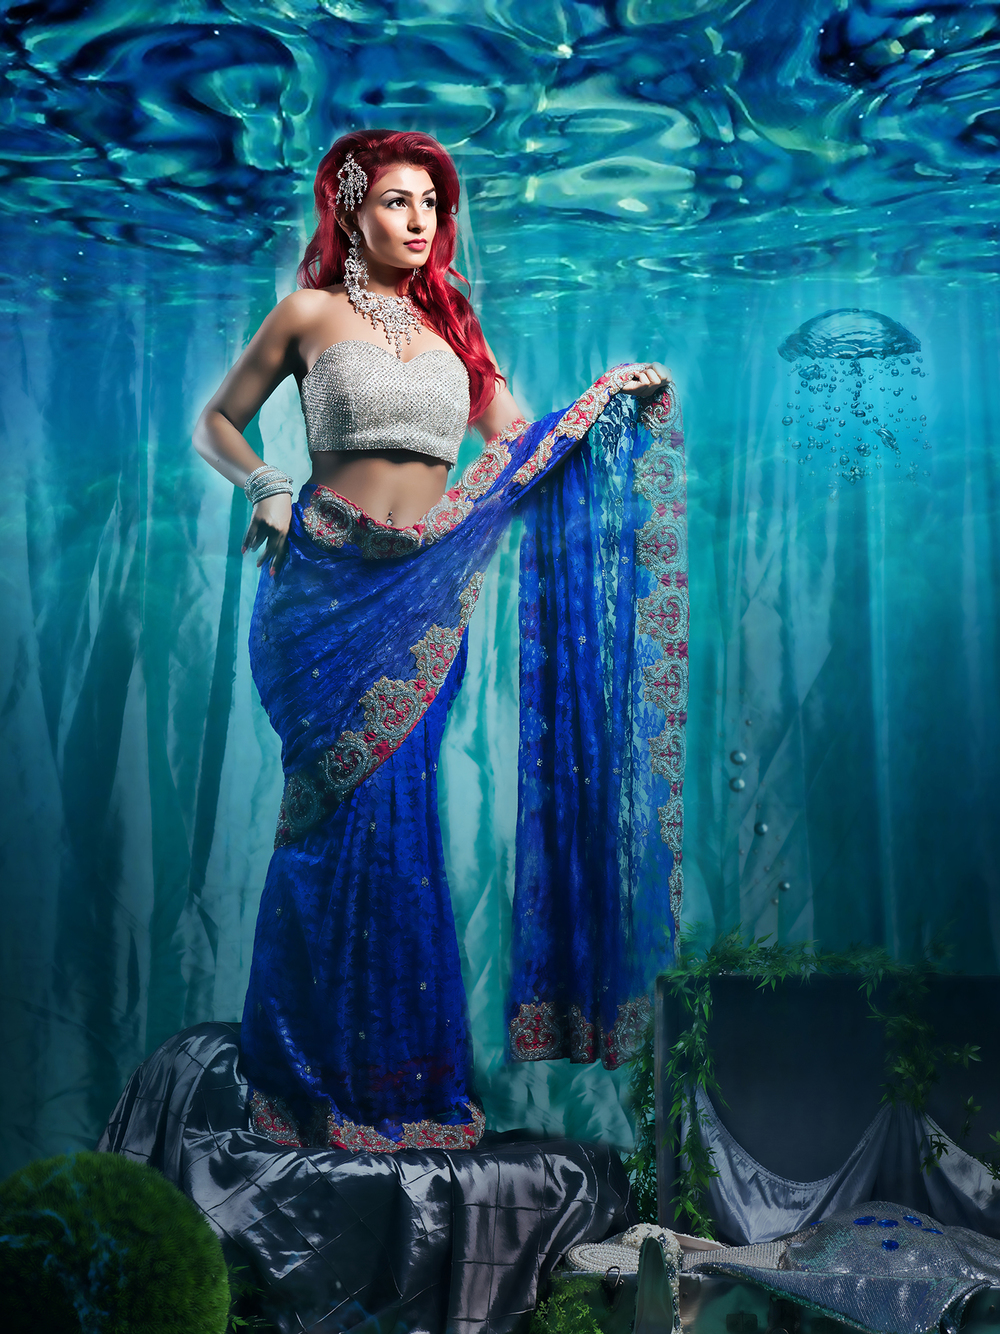 Ariel - Indian Disney Princess